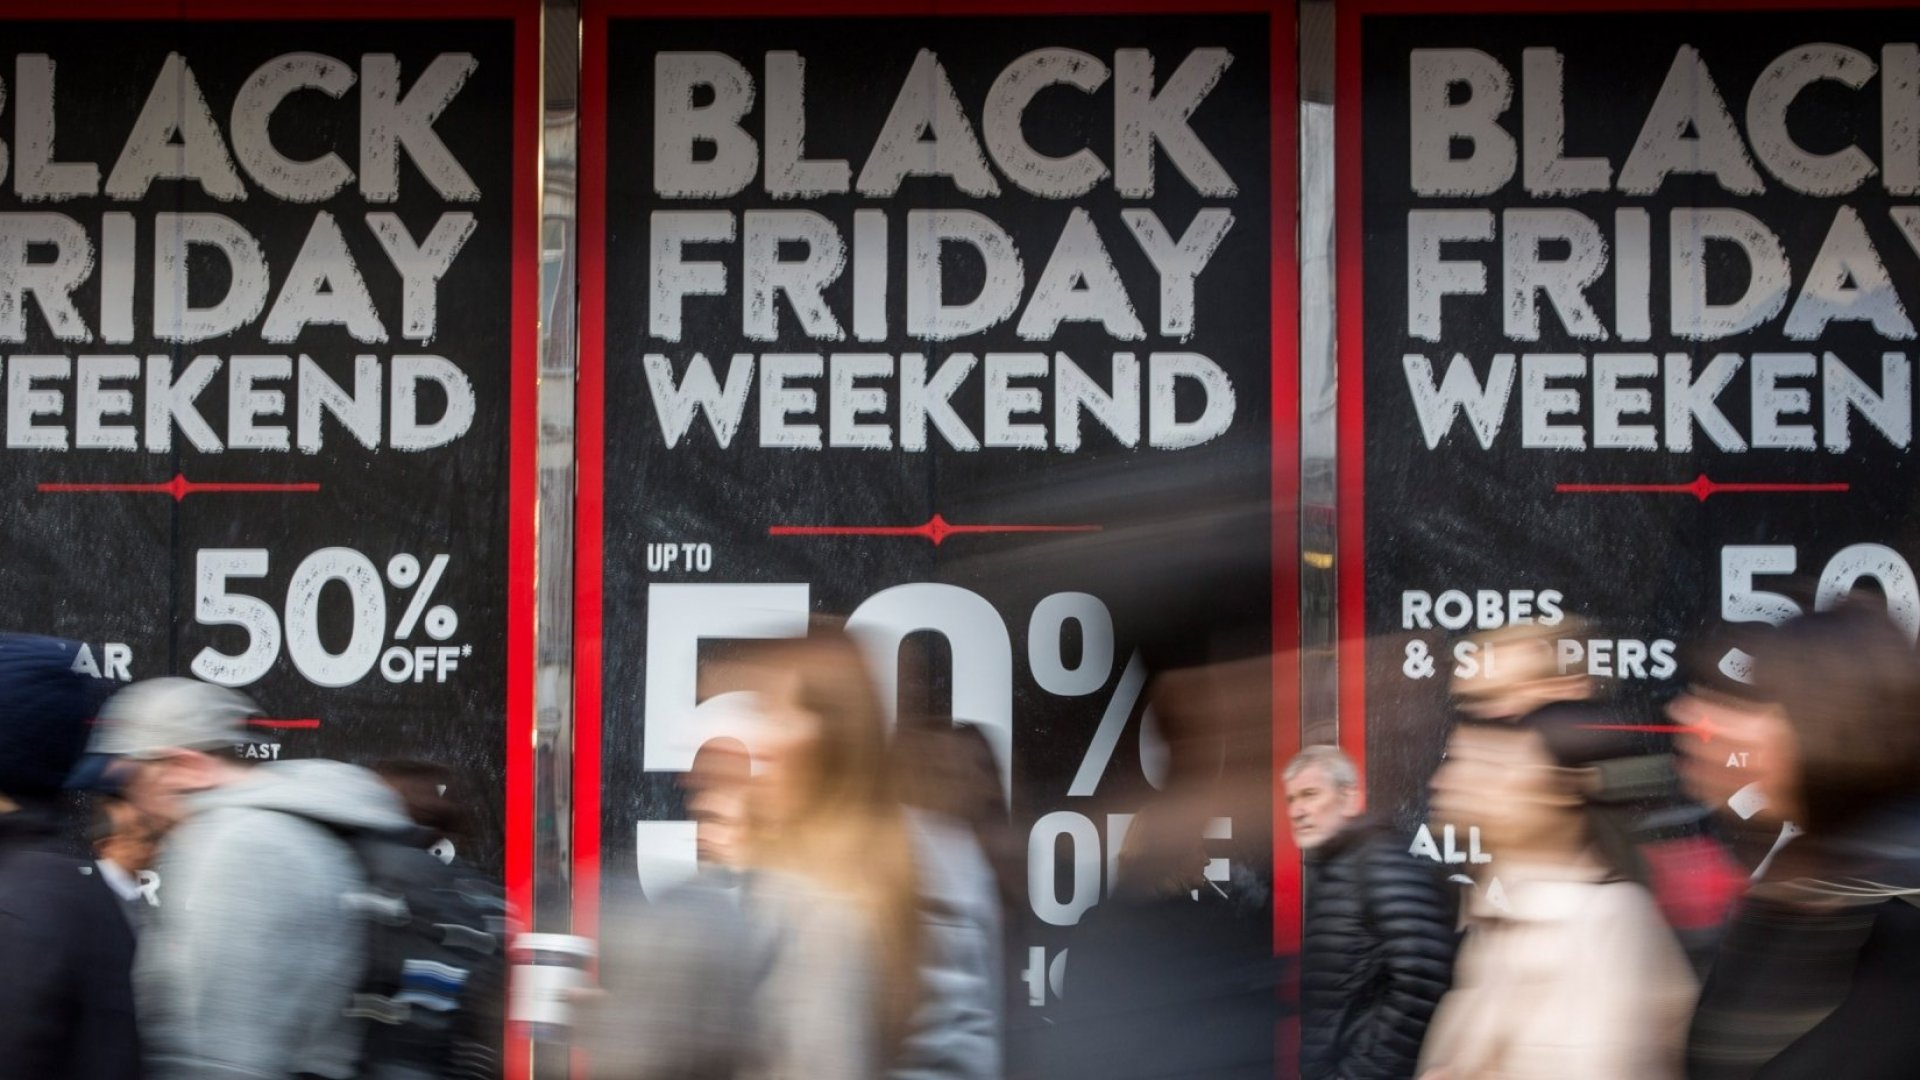 7 Black Friday and Cyber Monday Sales Tips to Make This Holiday Season Your Best Ever